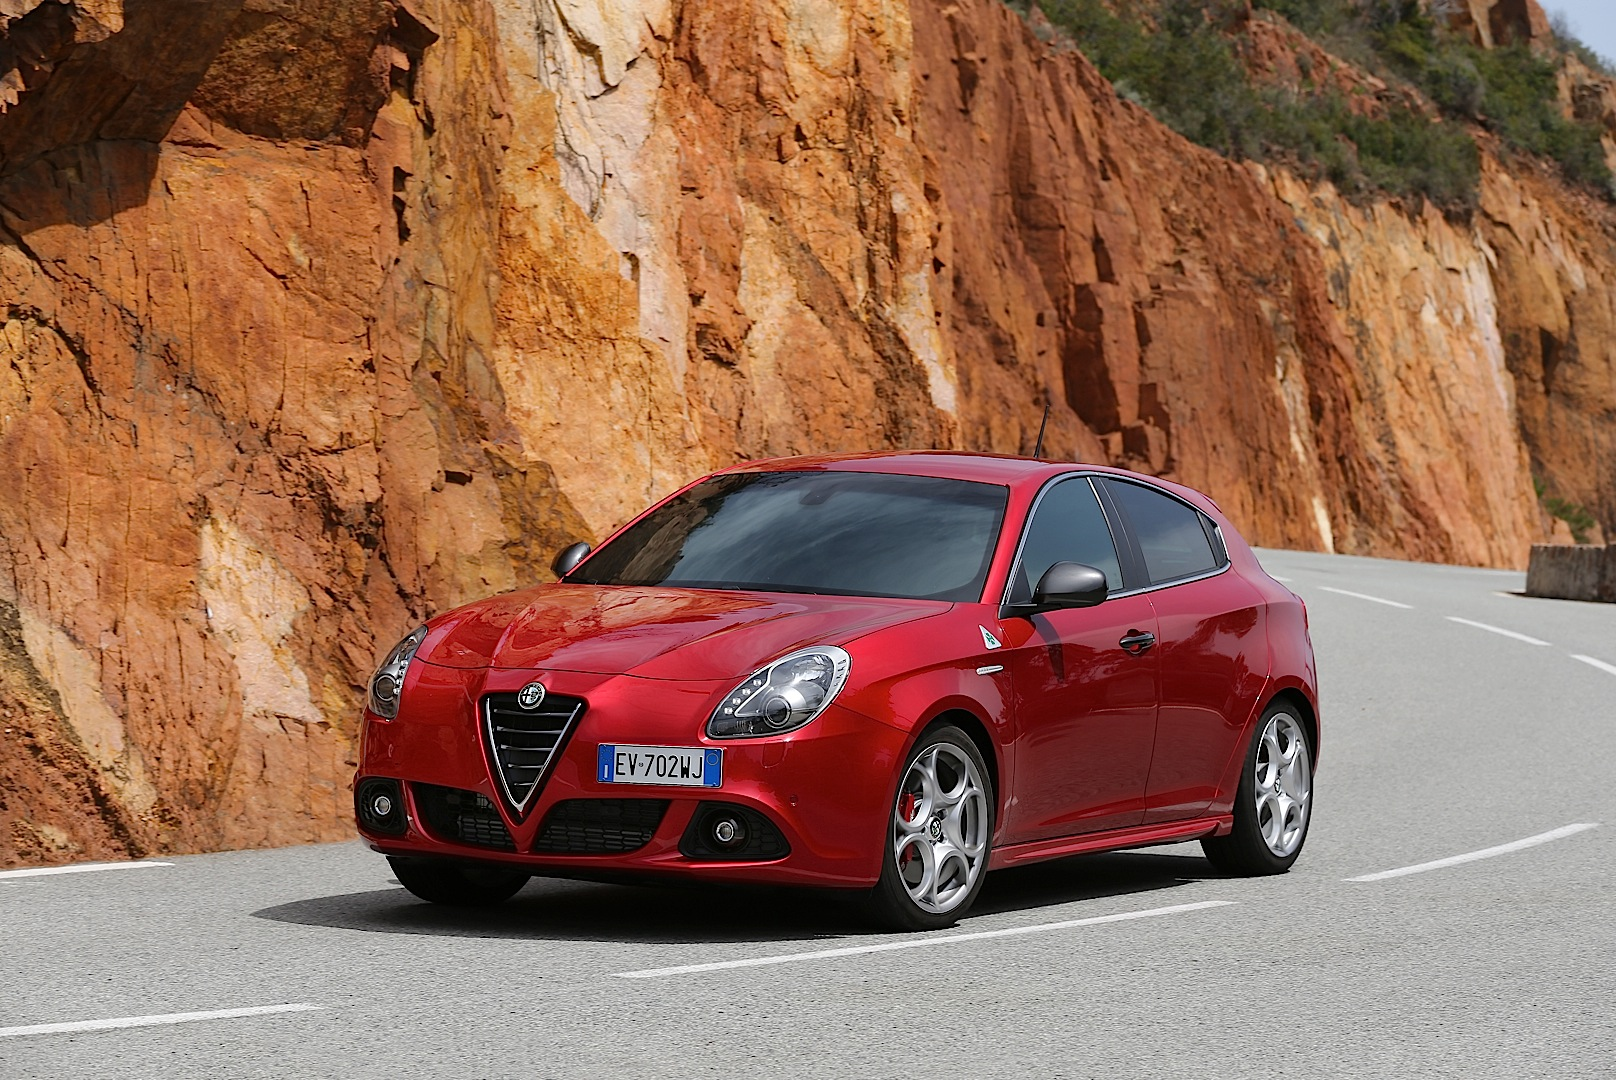 alfa romeo giulietta mito quadrifoglio verde uk pricing autoevolution. Black Bedroom Furniture Sets. Home Design Ideas